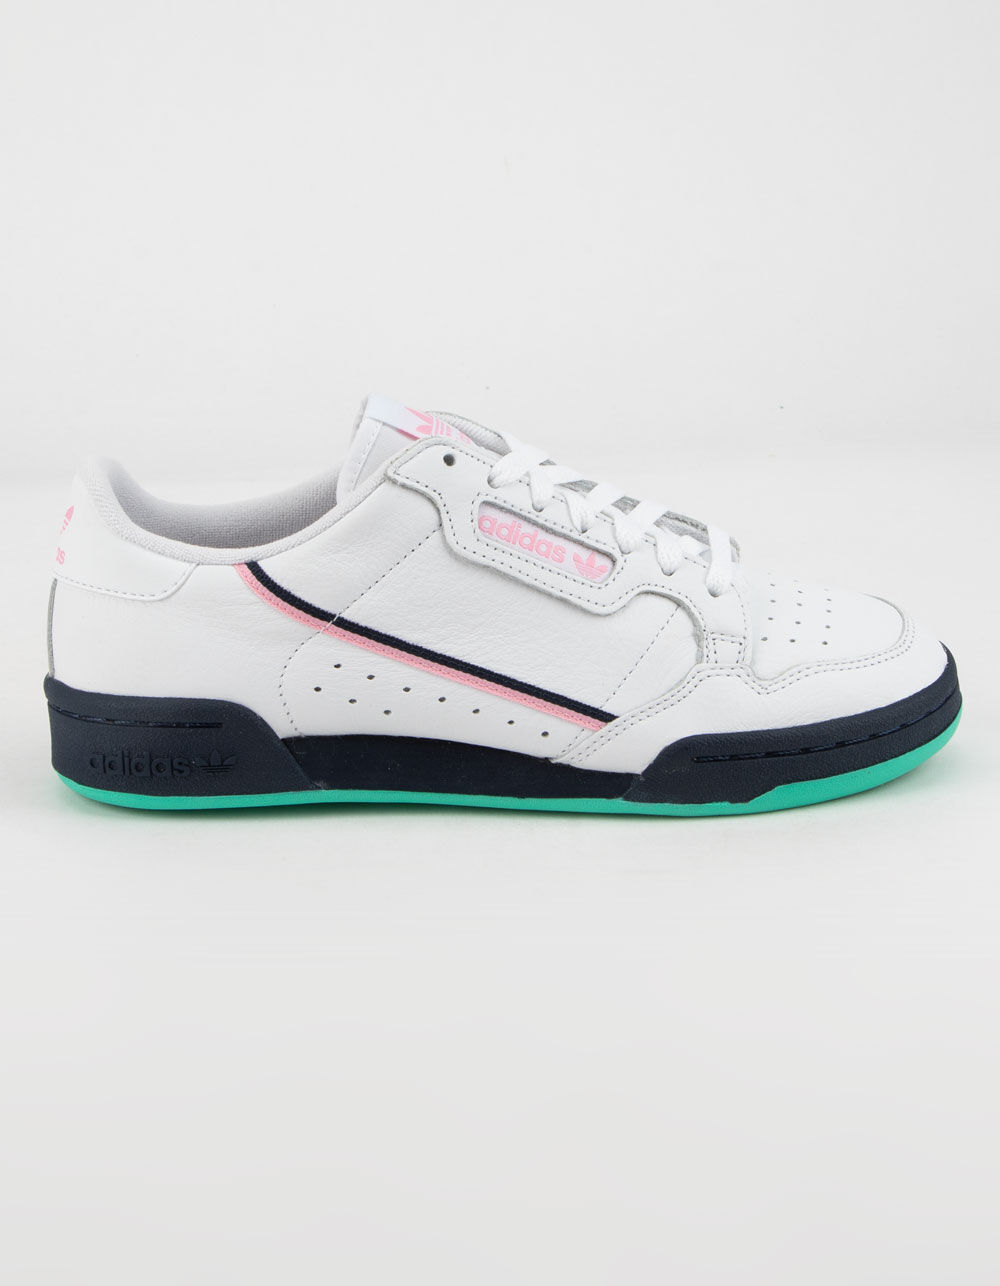 ADIDAS Continental 80 Future White & True Pink Shoes